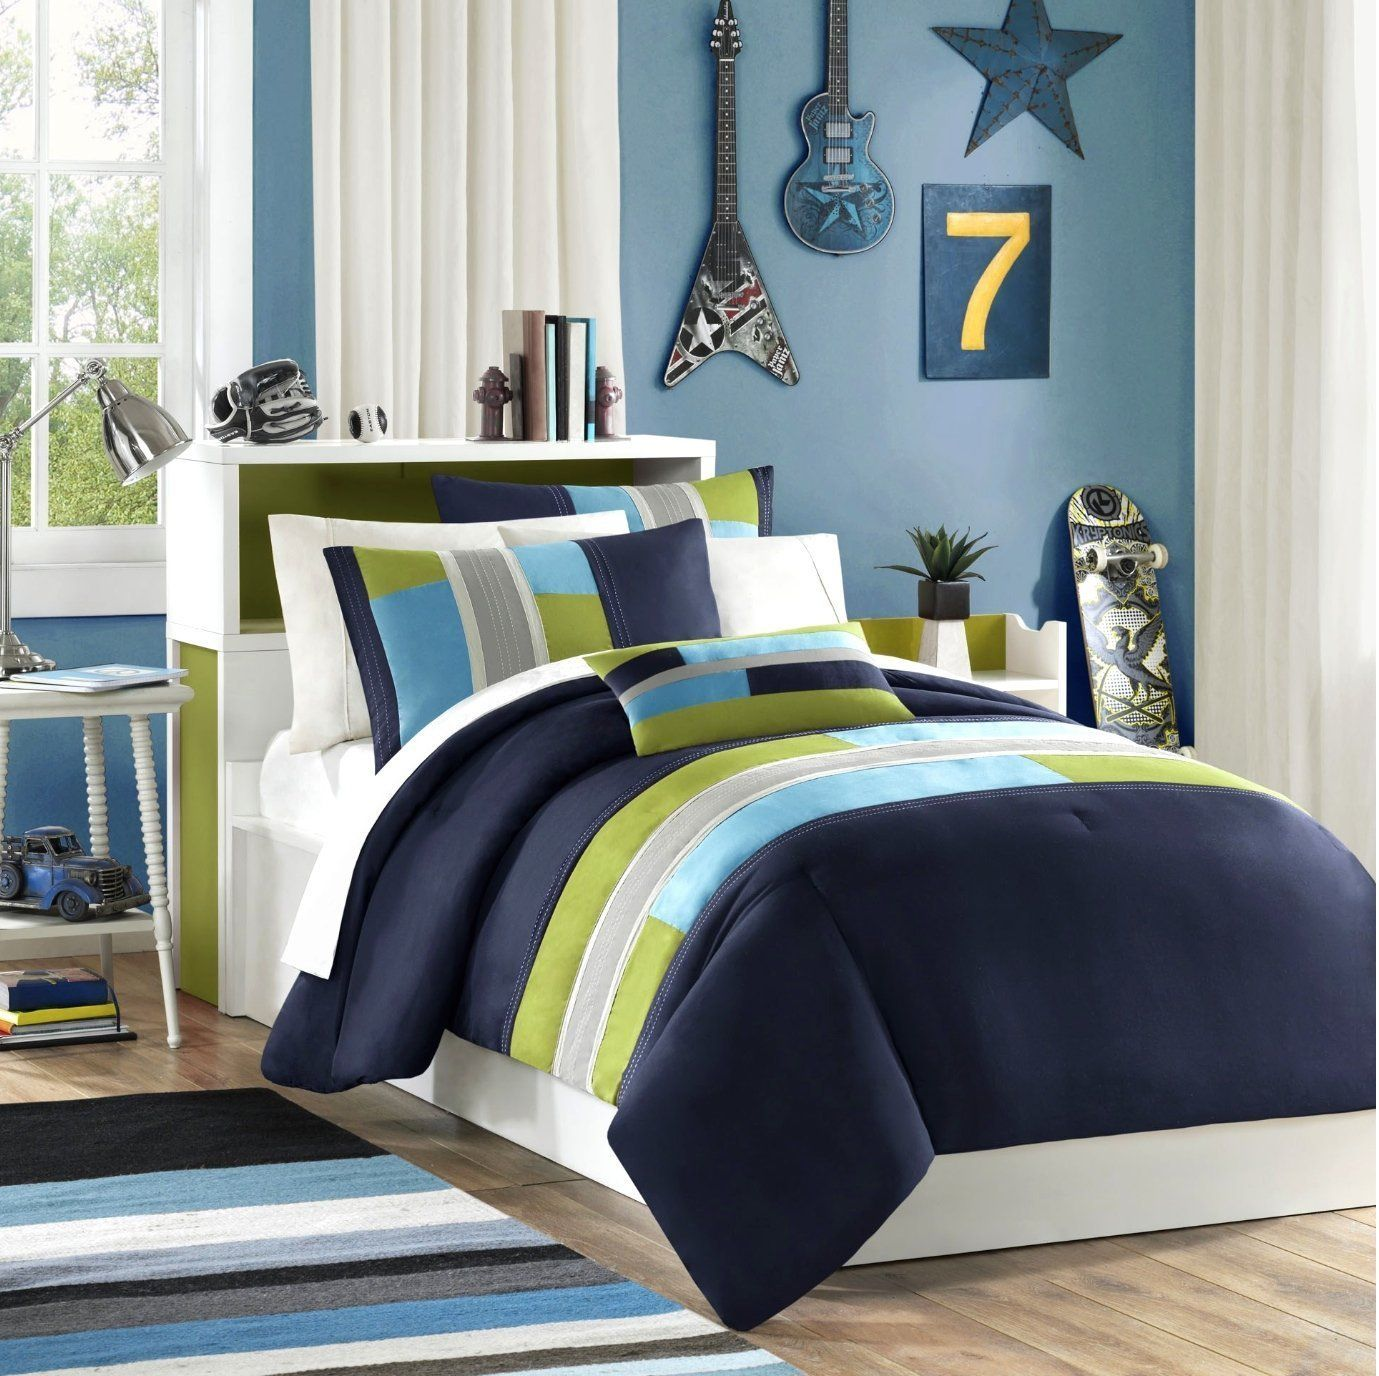 royal blue and navy bedding sets | twin comforter, comforter and twins